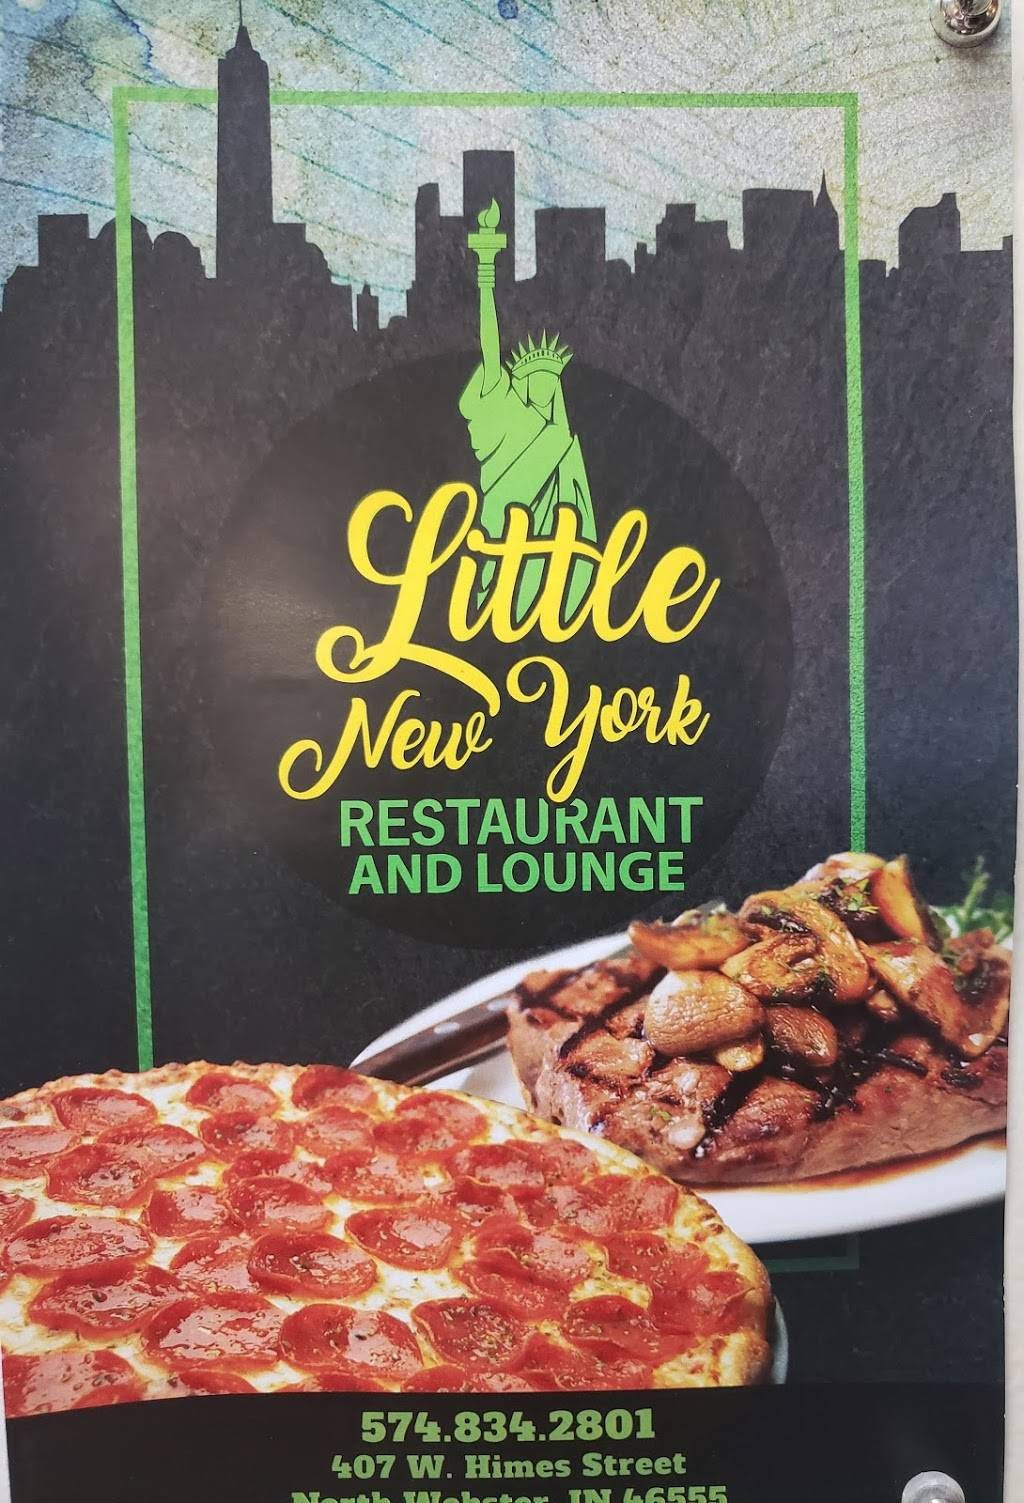 Little New York Restaurant and Lounge | restaurant | 407 W Himes St, North Webster, IN 46555, USA | 5748342801 OR +1 574-834-2801